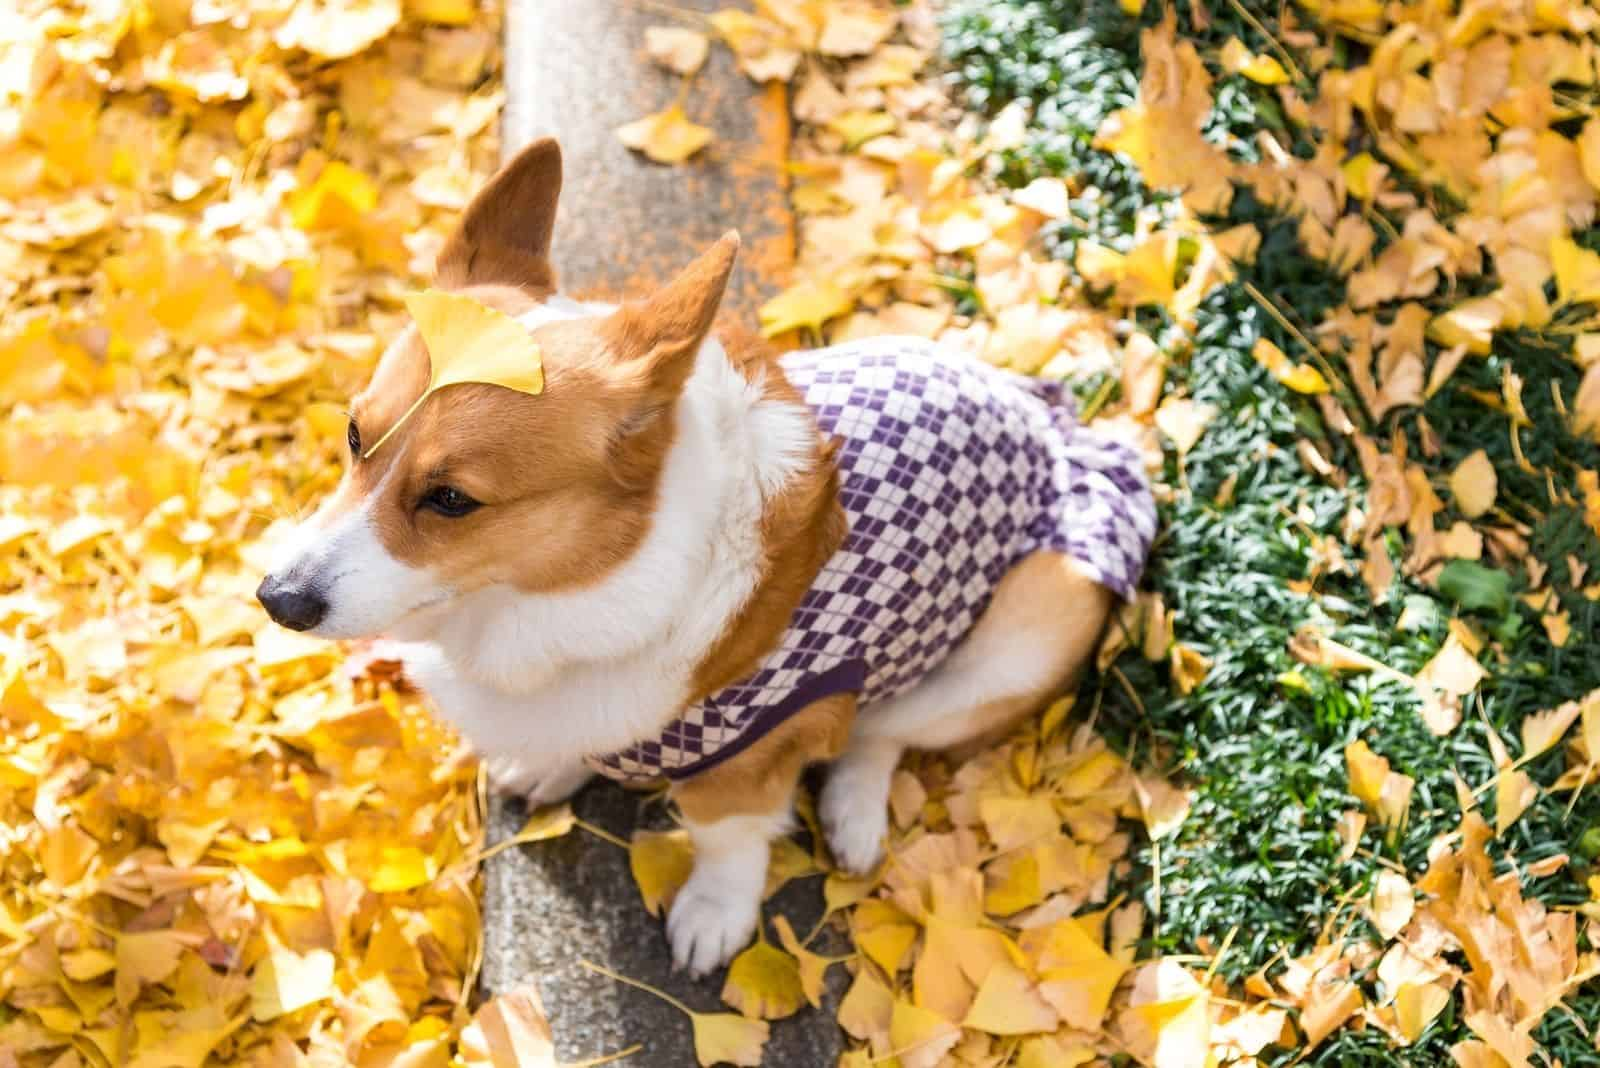 beautiful corgi dog puppy with the yellow maple leaves on his head in the early autumn atmosphere of a Golden and red maple in the Park